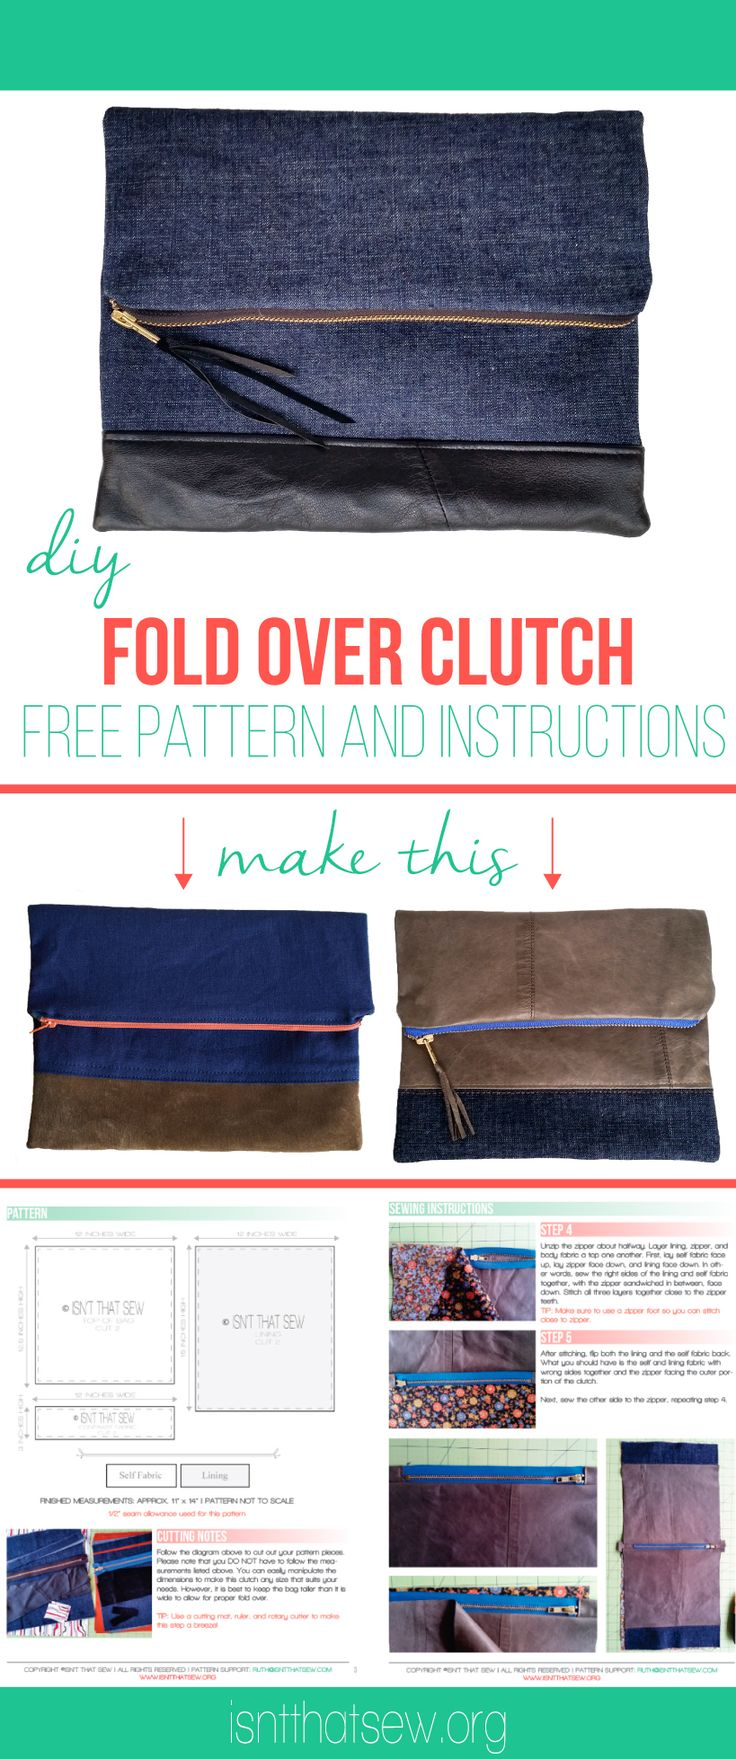 best sewing projects images on pinterest sewing tips sewing